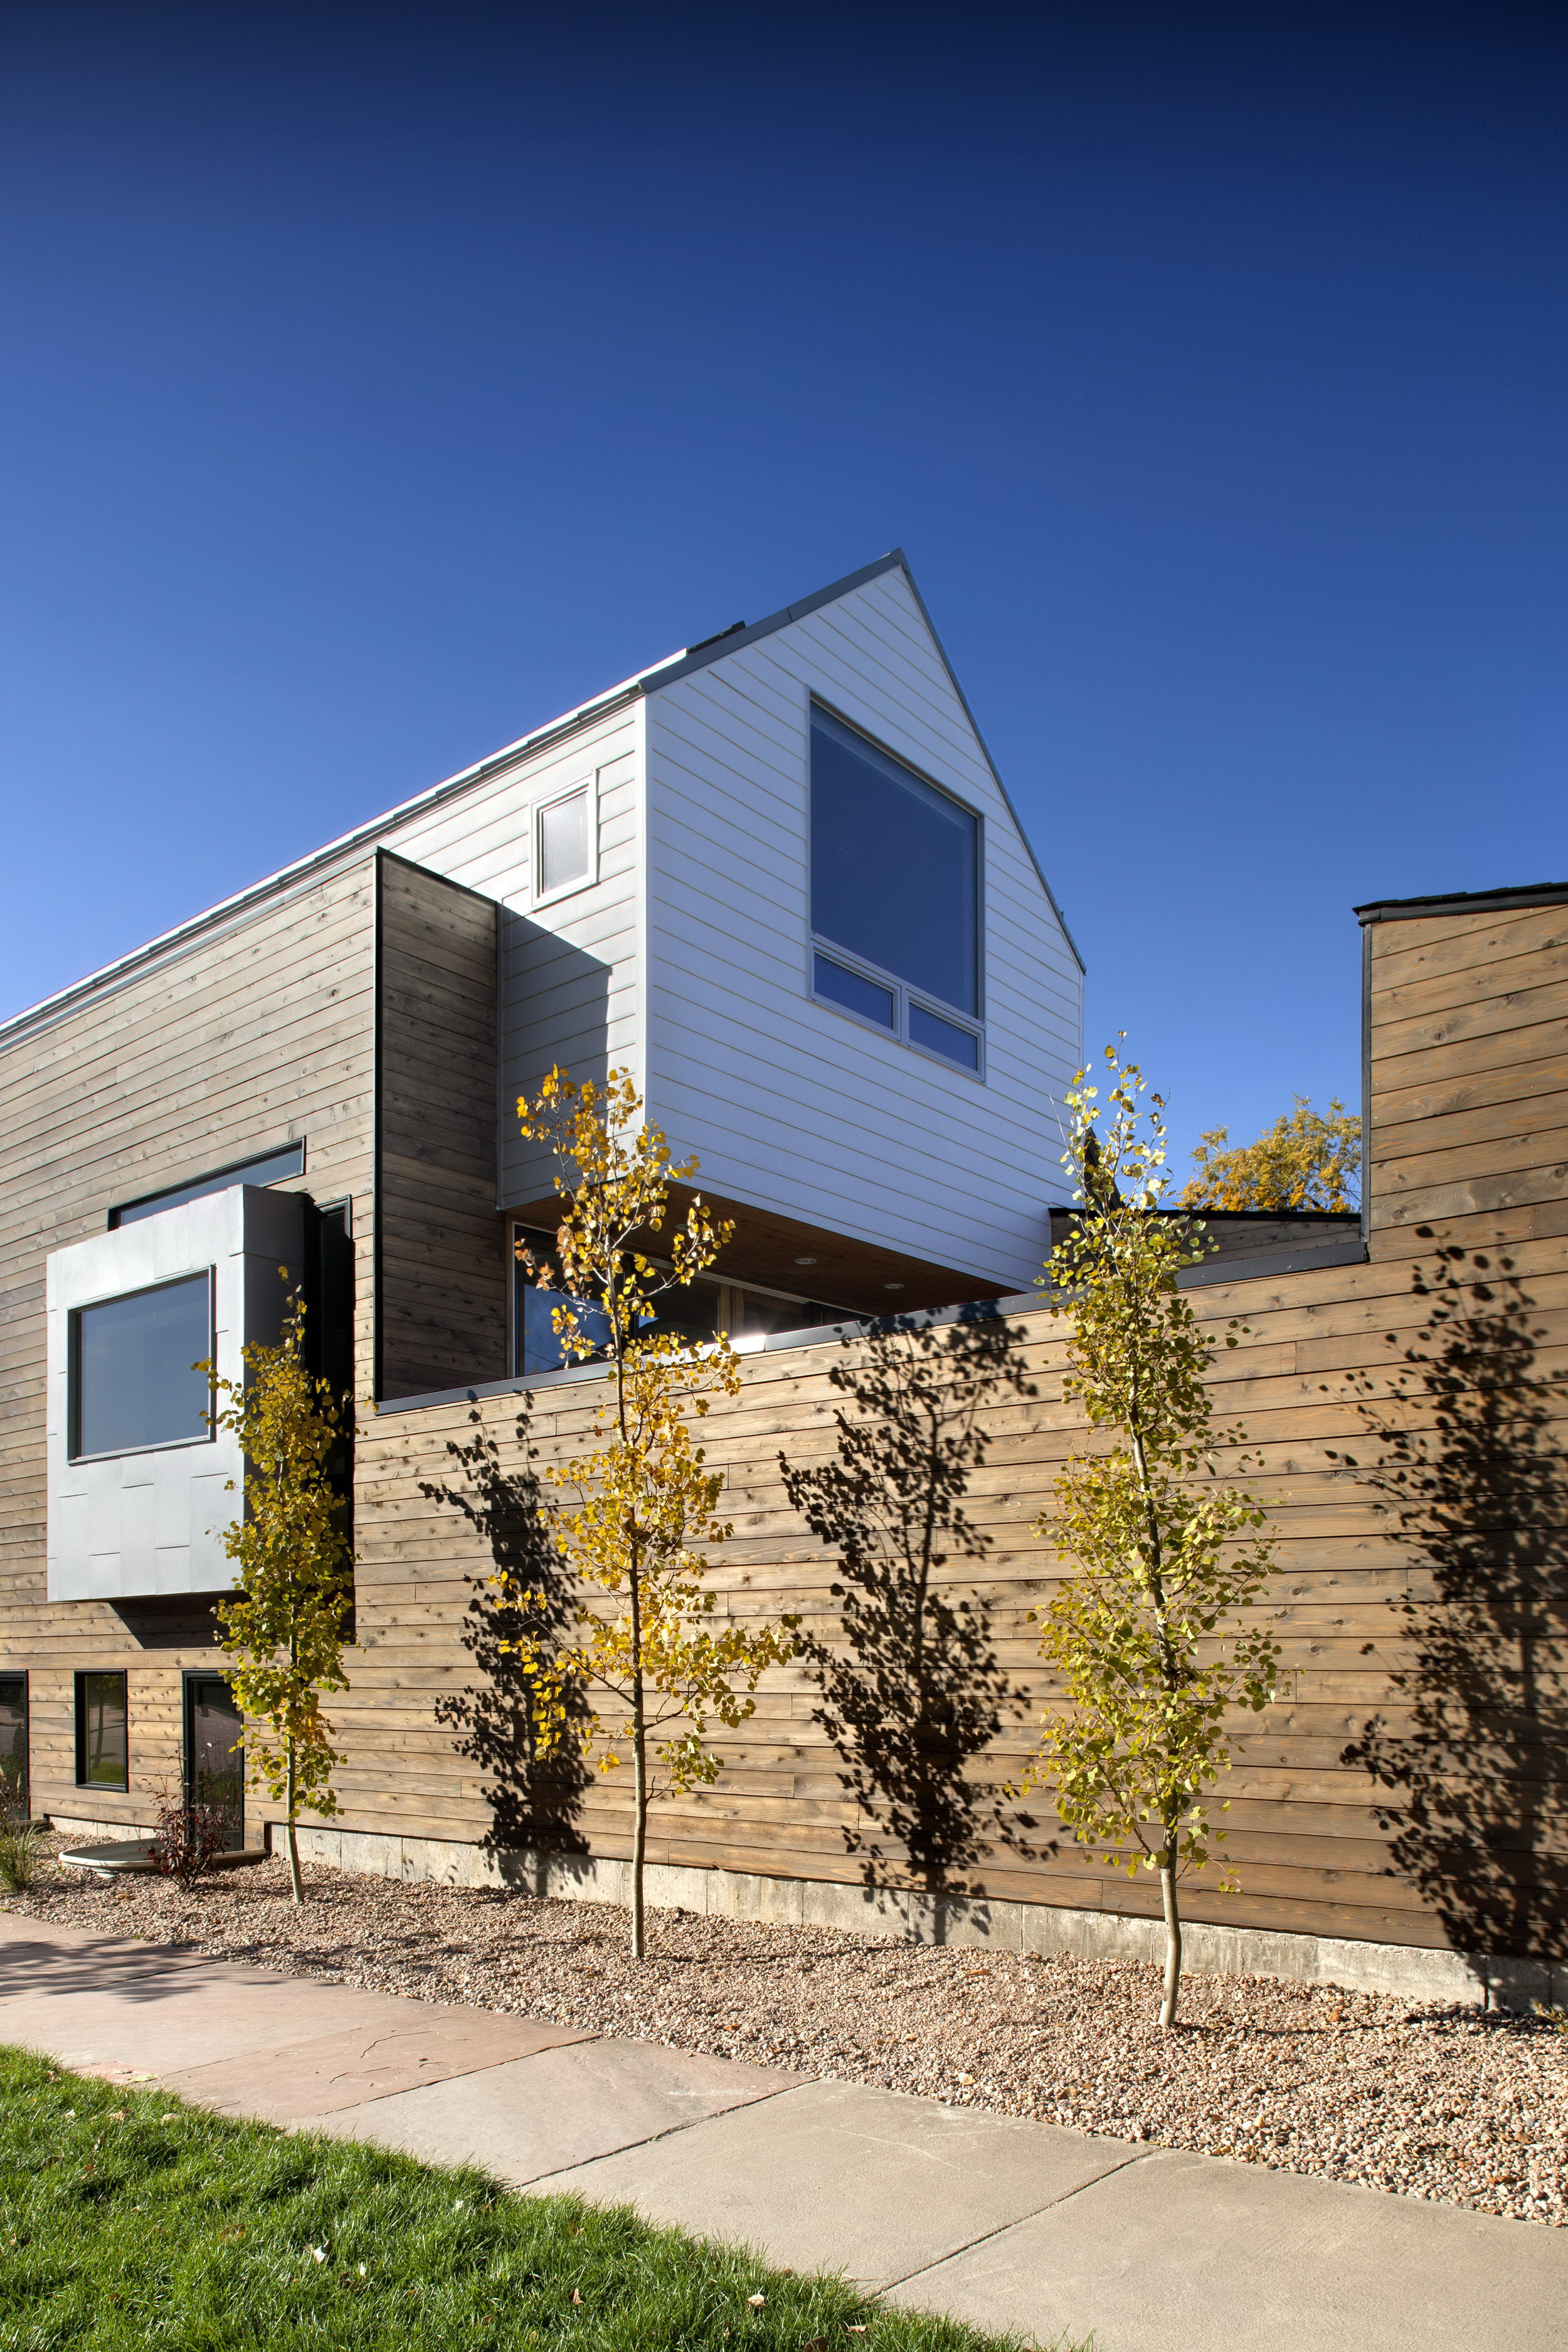 33rd Street House by Meridian 105 Architecture